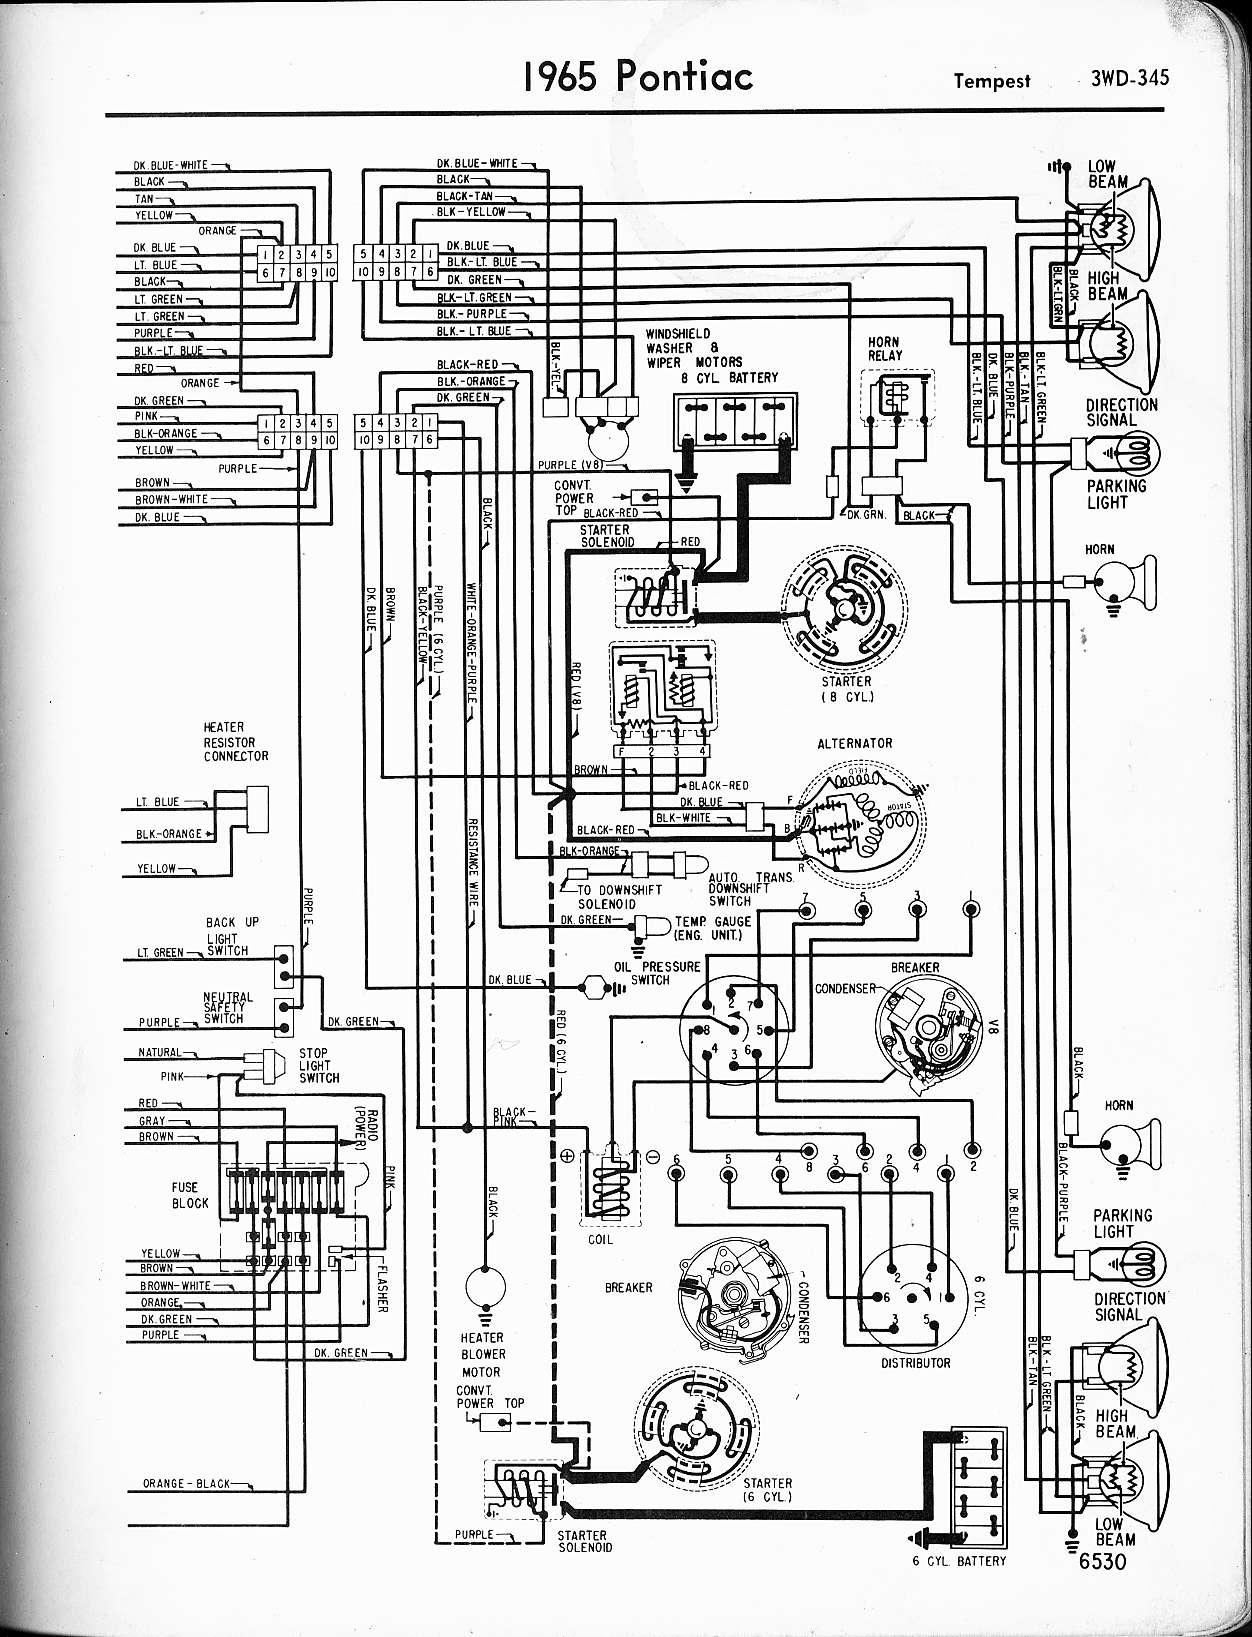 [WRG-7447] 1964 Chevy Ignition Switch Wiring Diagram